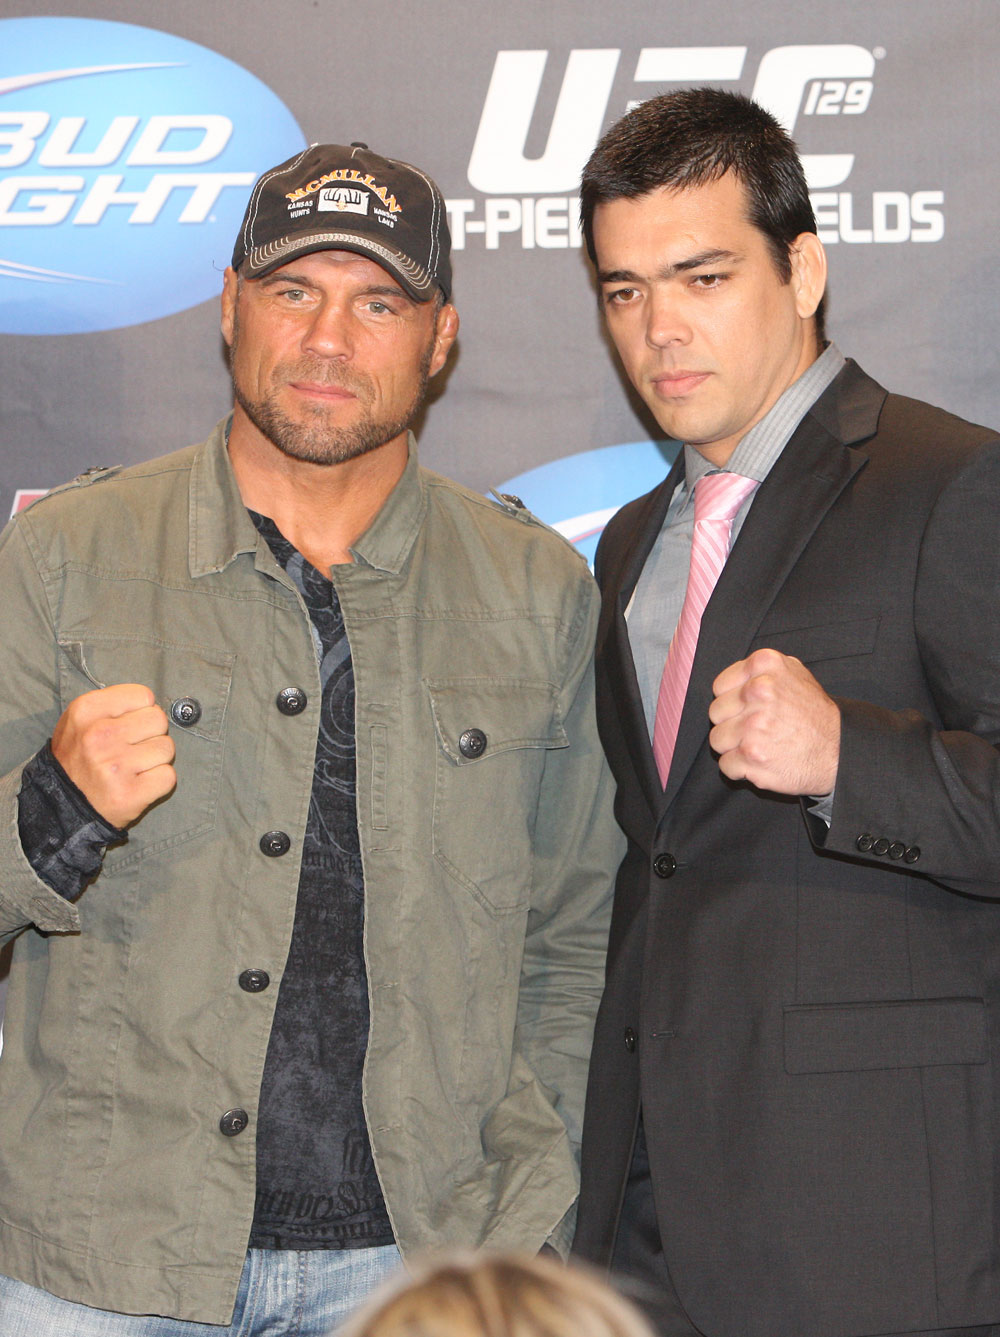 Randy Couture &amp; Lyoto Machida